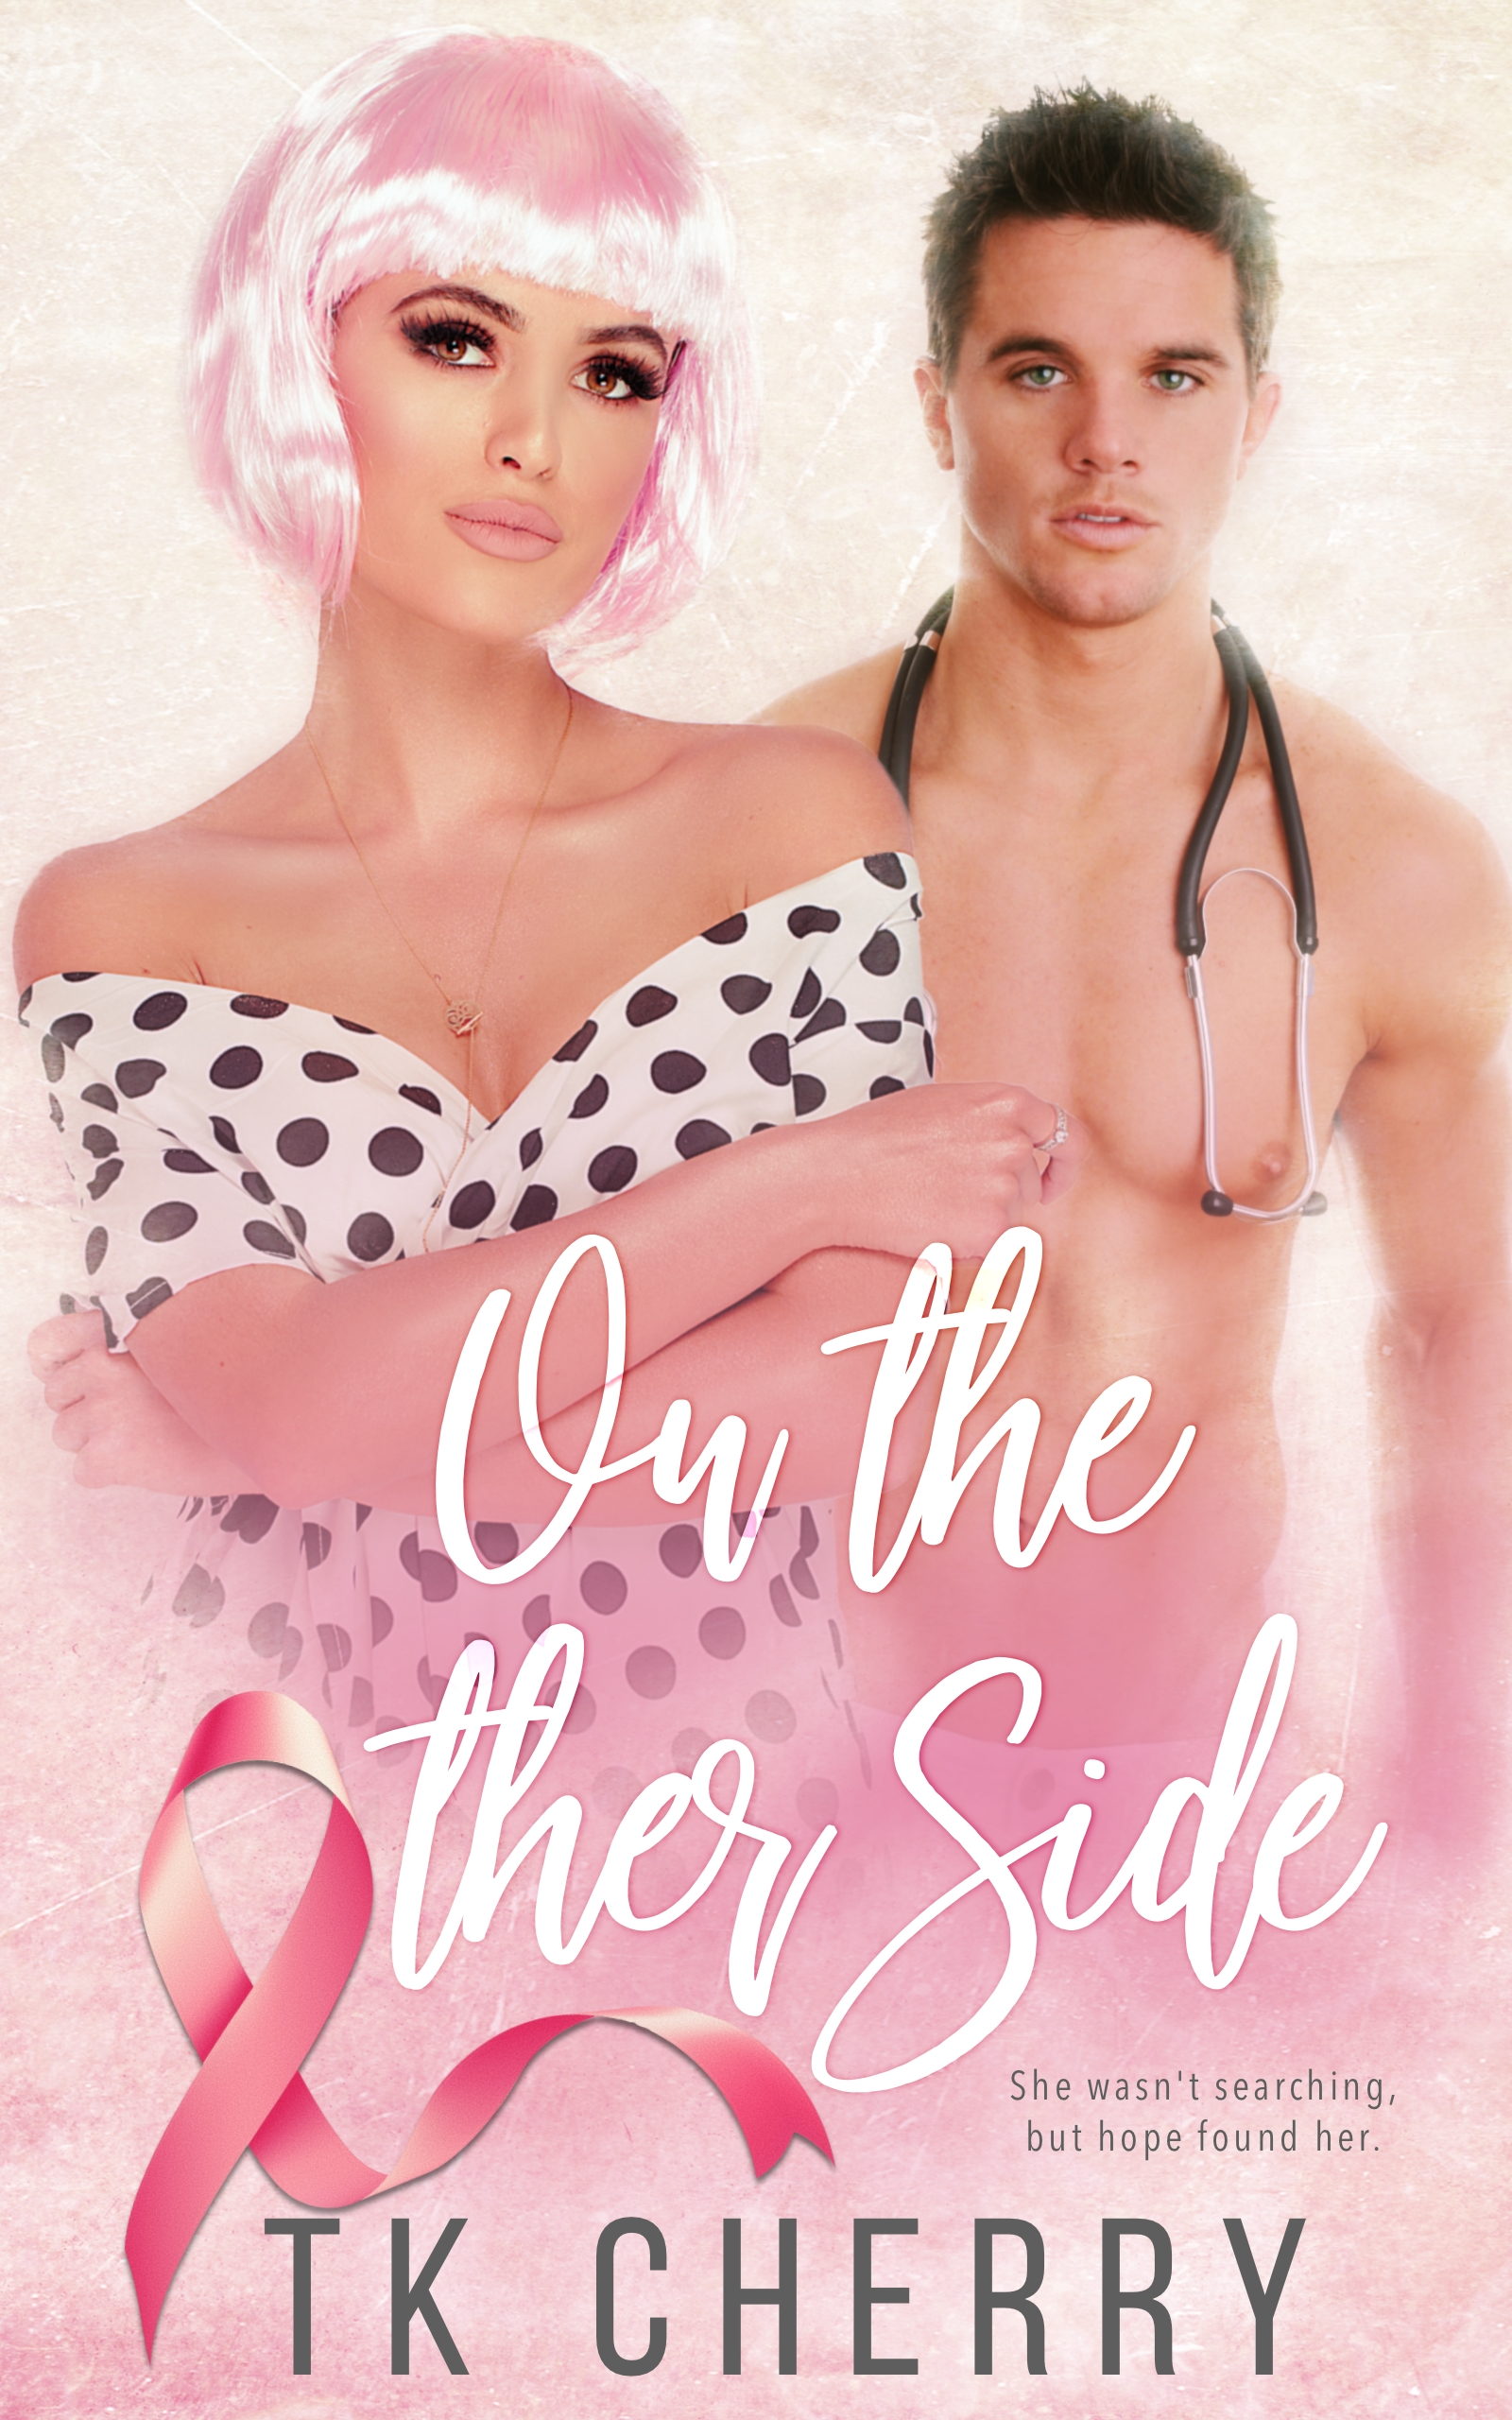 on-the-other-side-tk-cherry-1600x2560-ebook-1